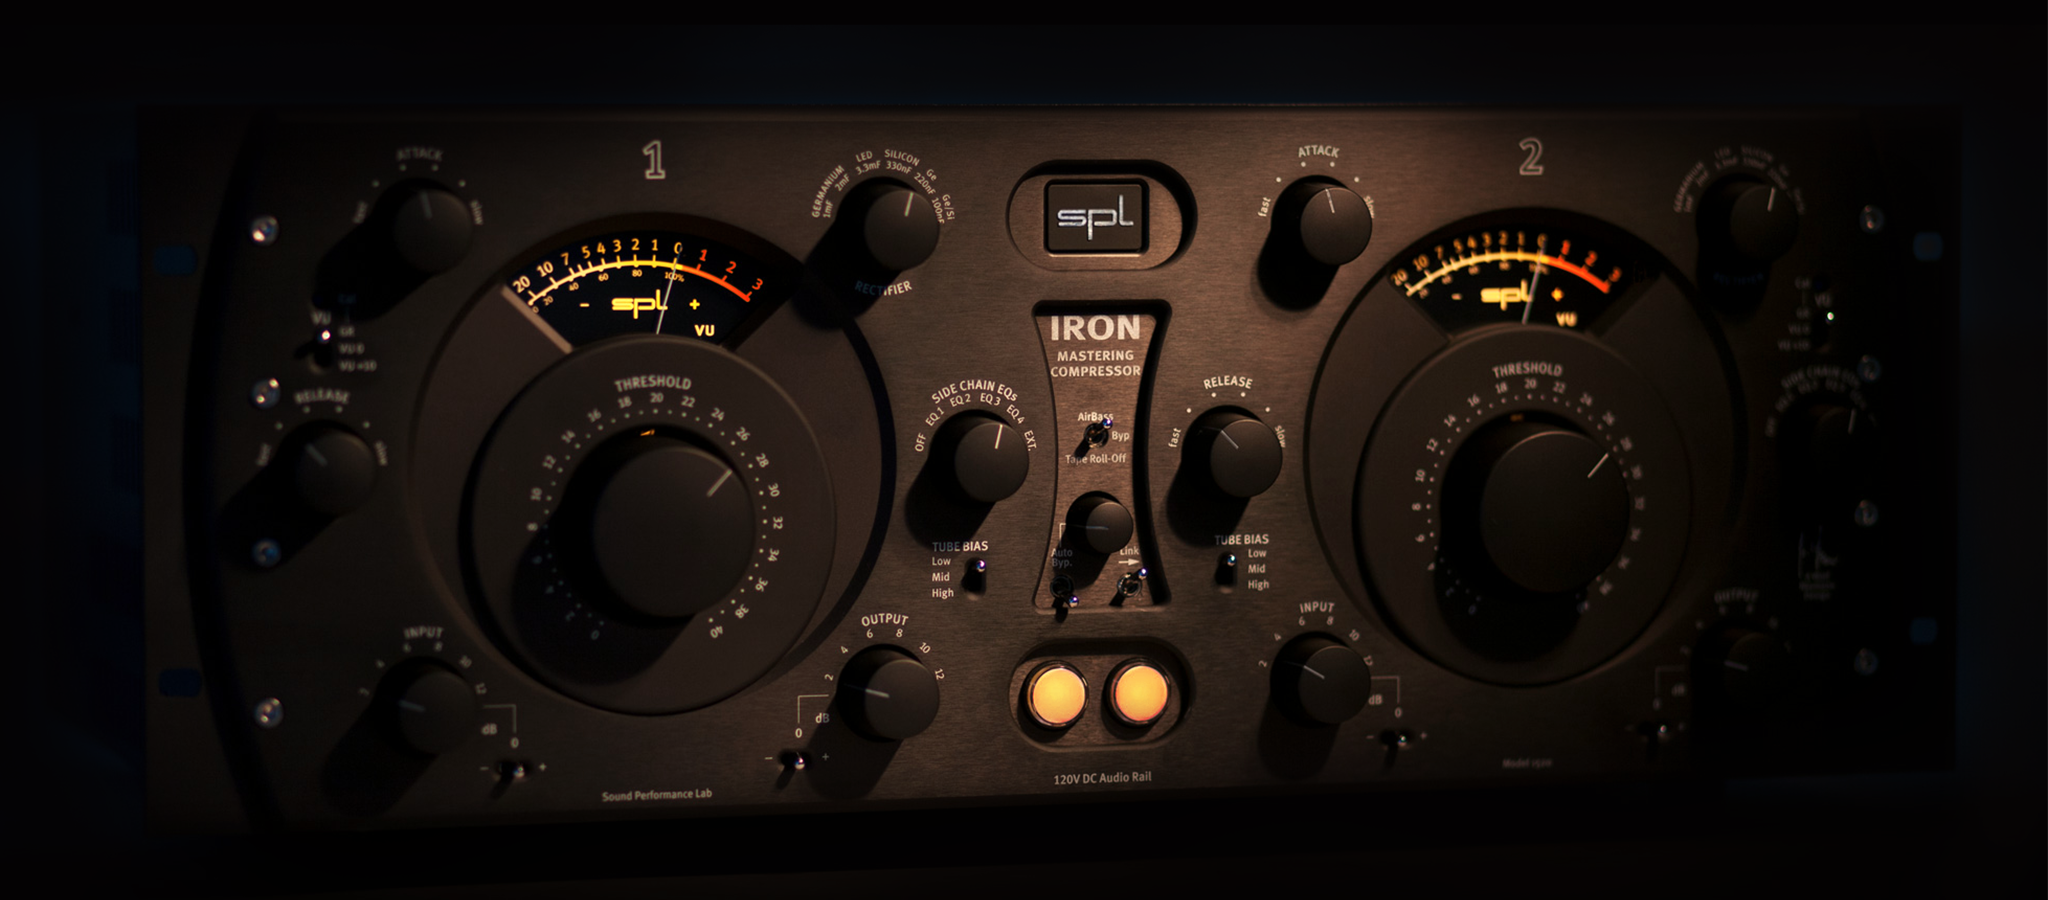 The IRON mastering compressor is not a copy of a classic